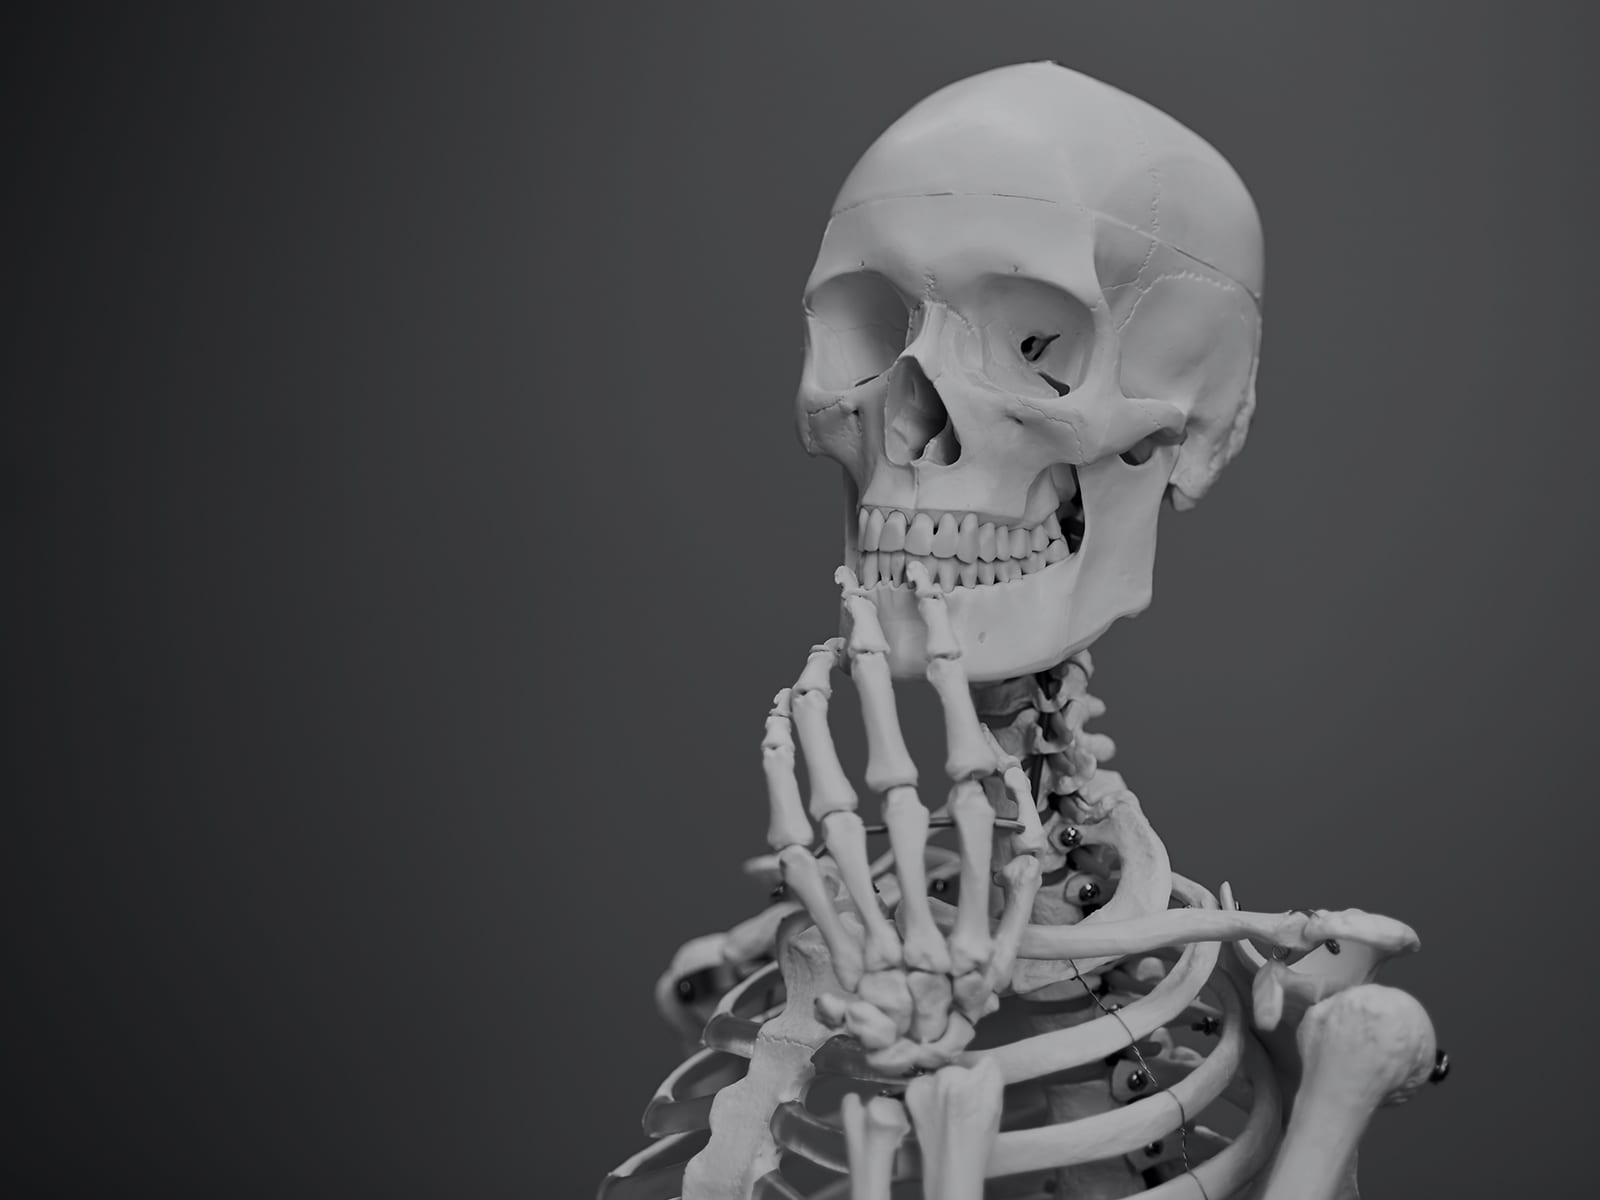 A skeleton asking what chiropractic really is